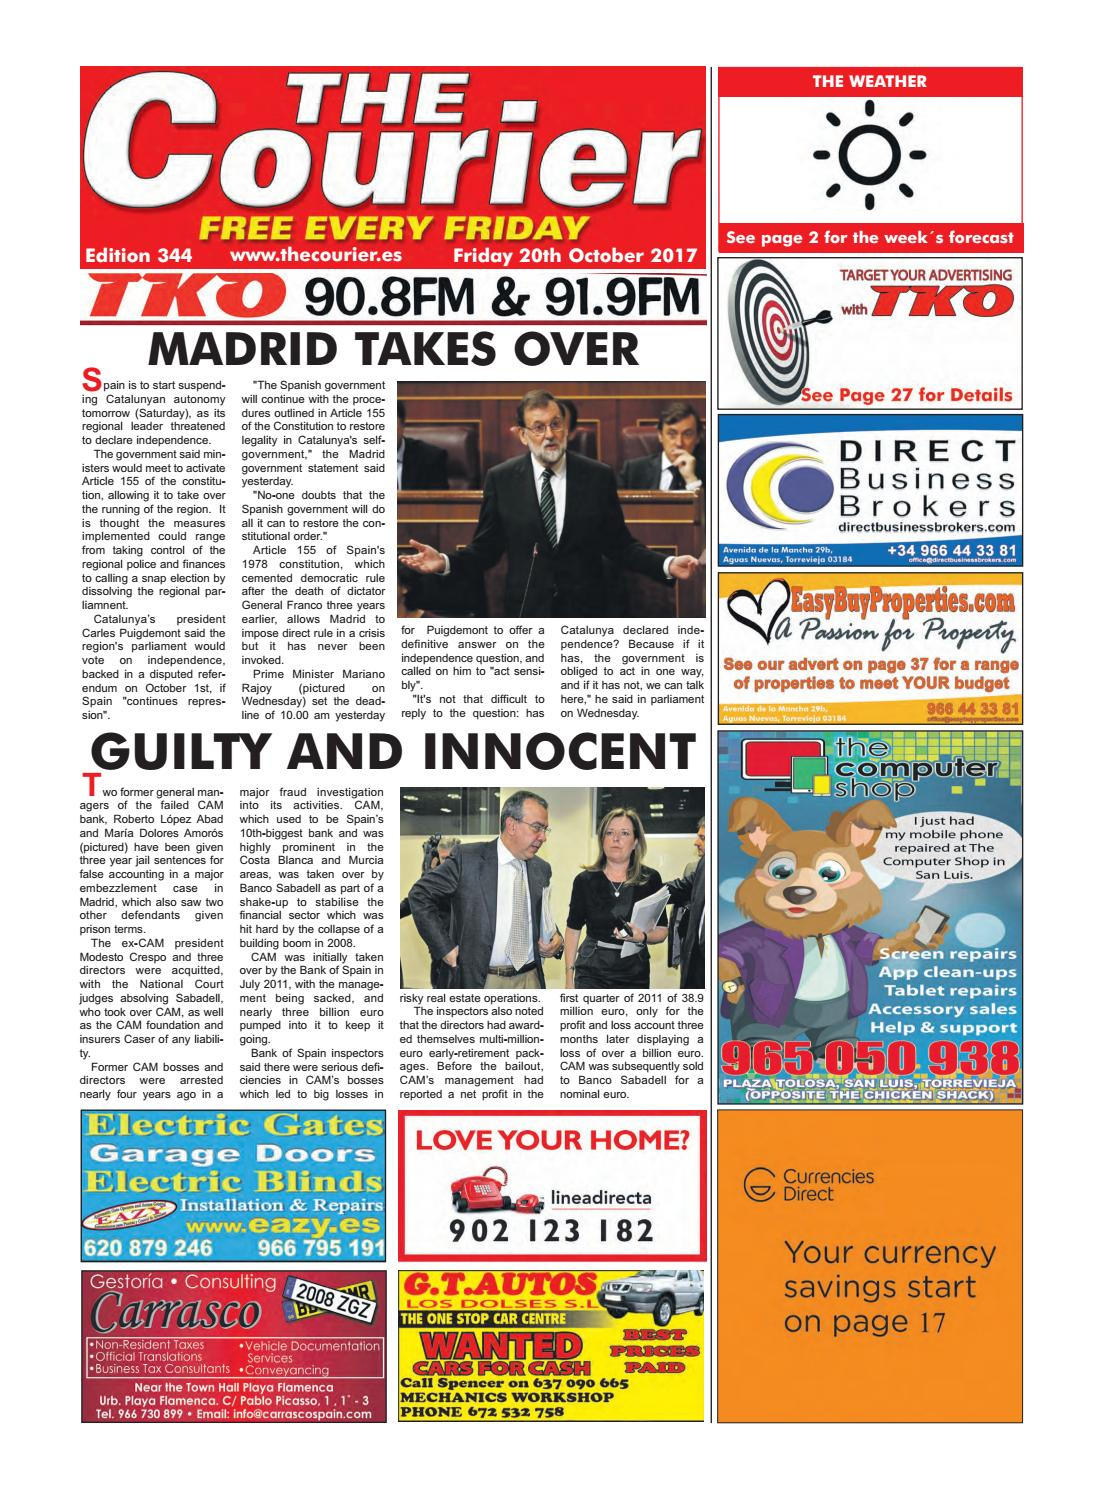 The Courier Edition 344 By The Courier Newspaper Issuu